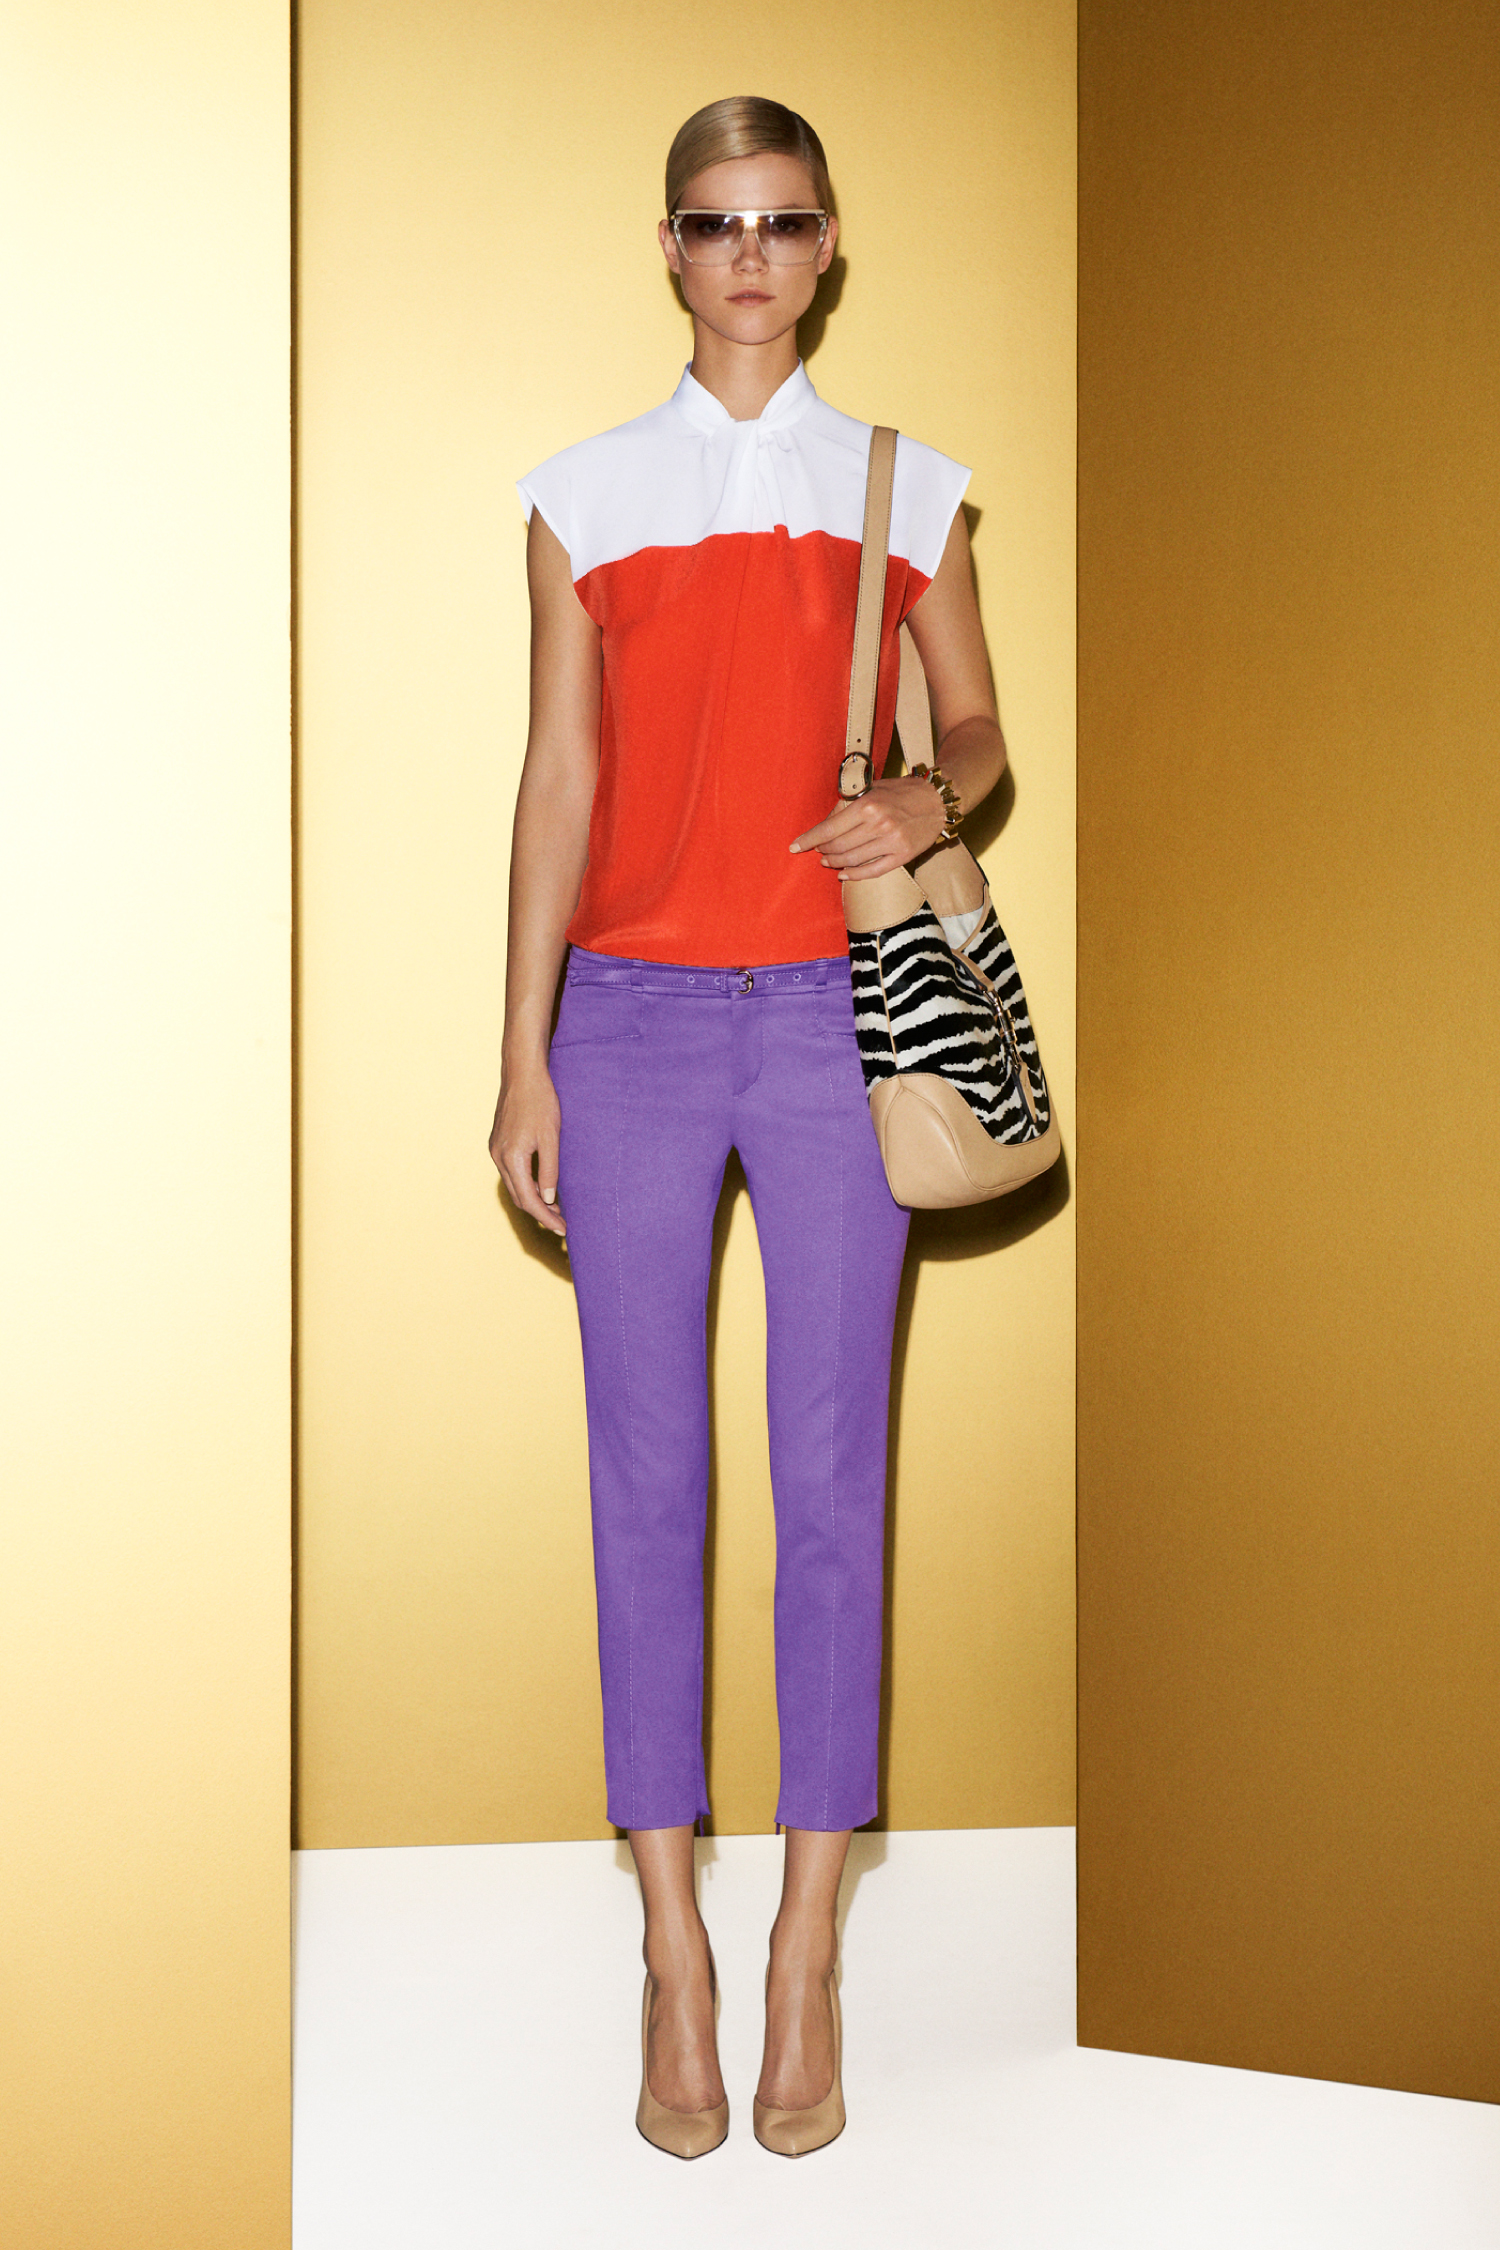 Art8amby S Blog: Featured Article: Gucci Cruise 2012